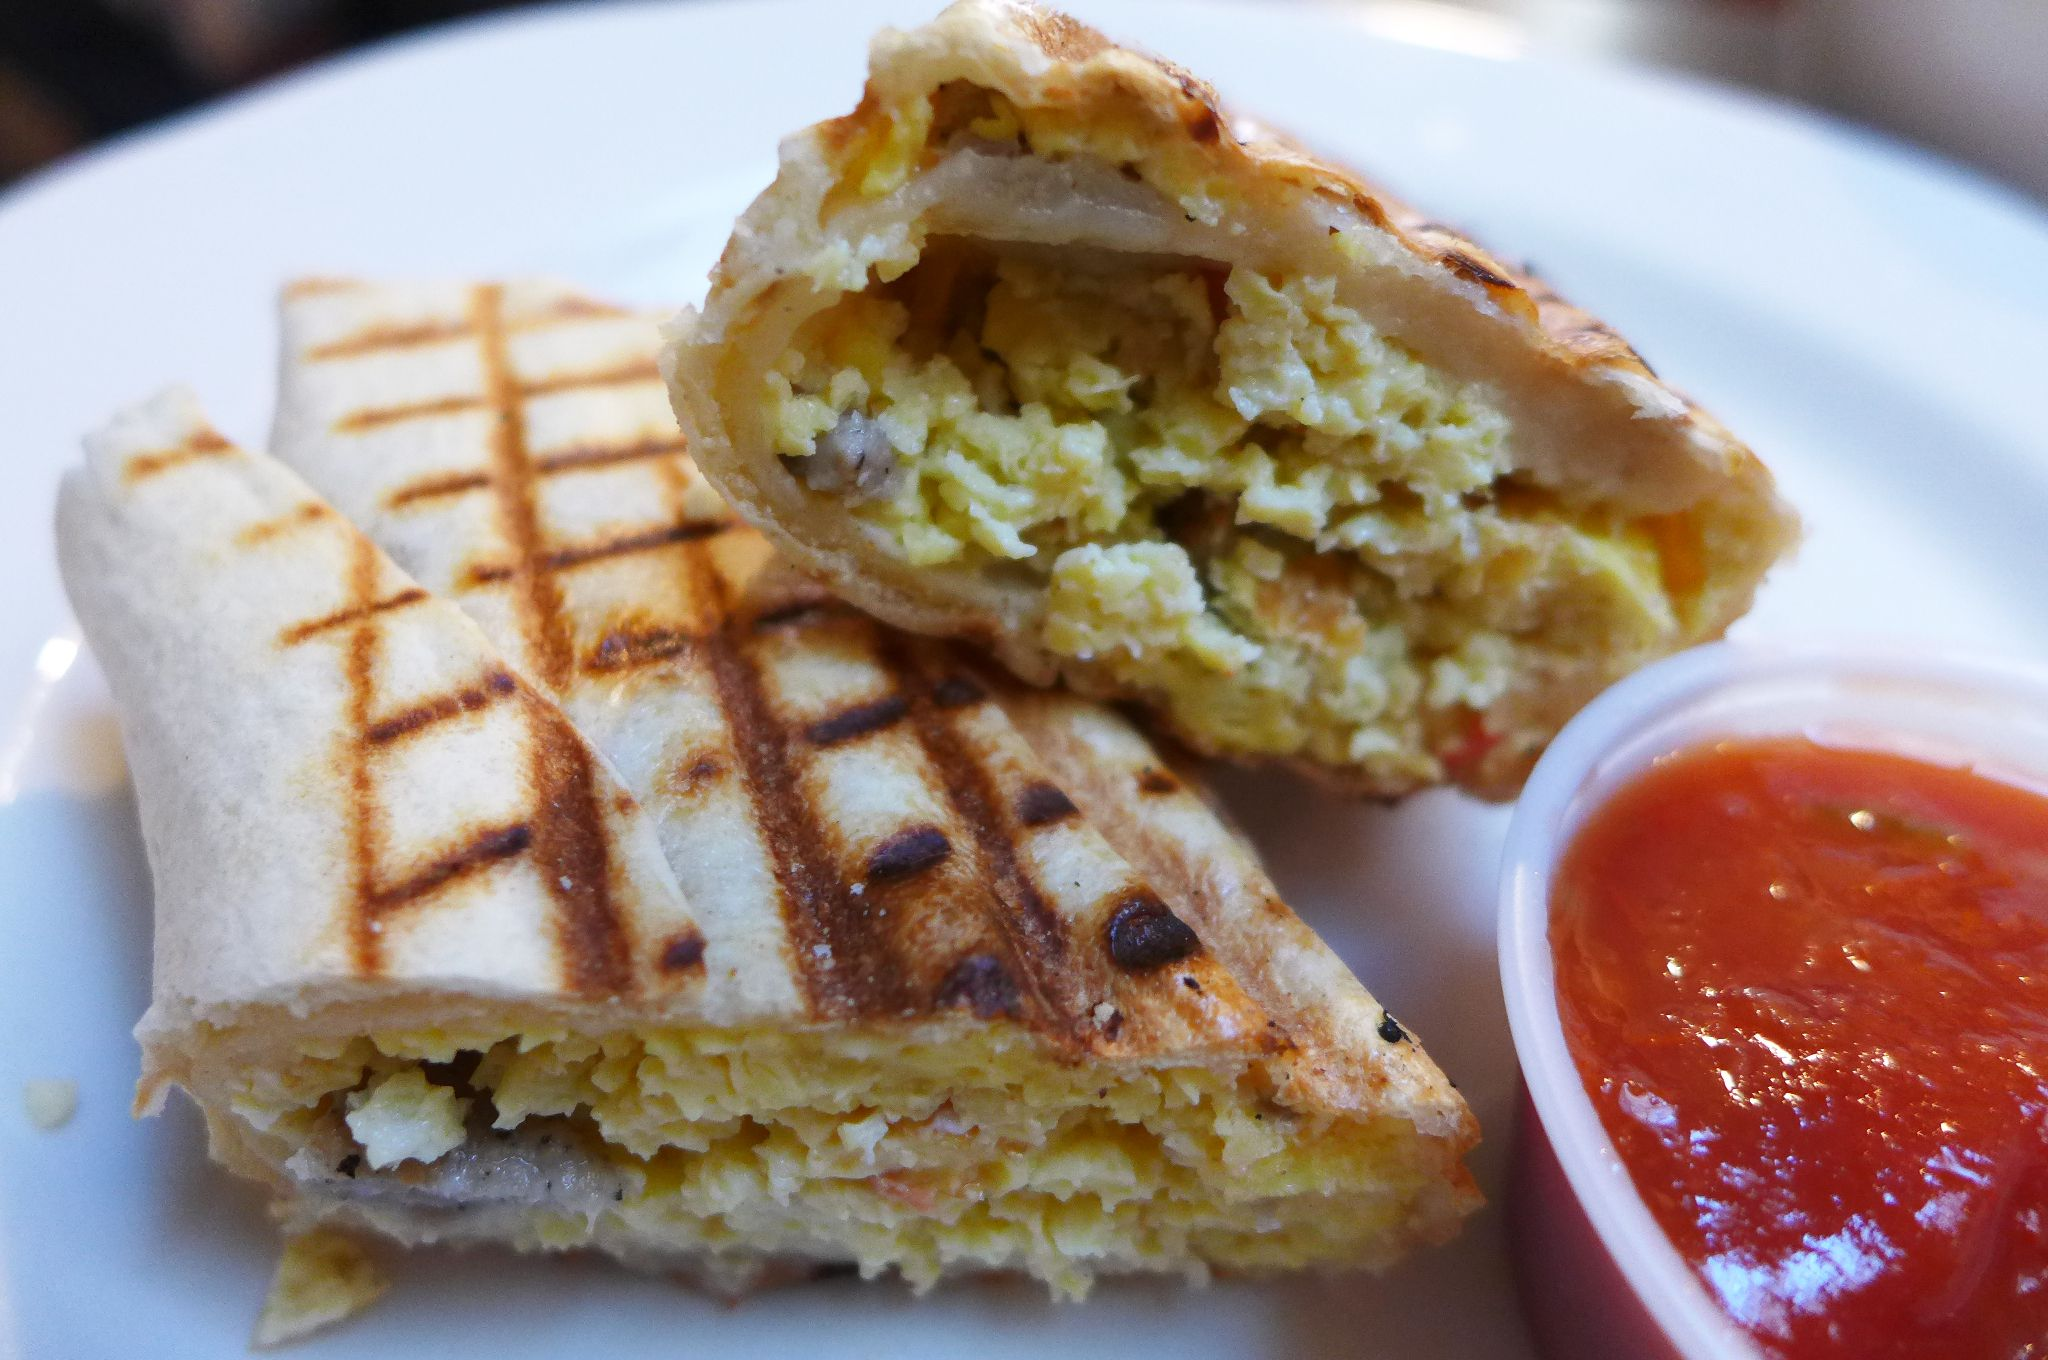 ... Coffee Bars Remake NYC's Classic Breakfast Sandwich - Eater NY